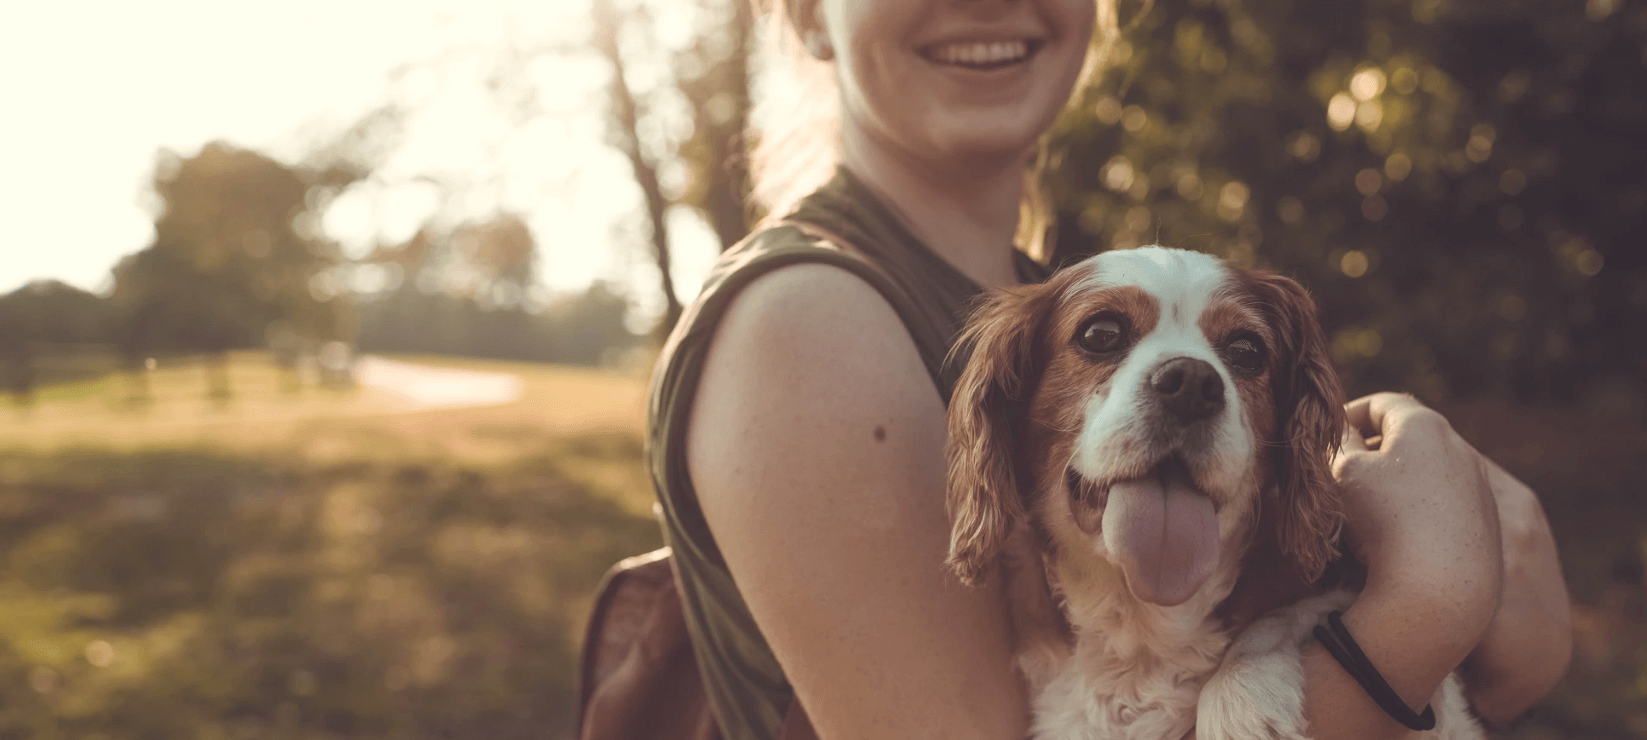 Why Do Some People Show too Much Empathy Towards Animals - calmerry